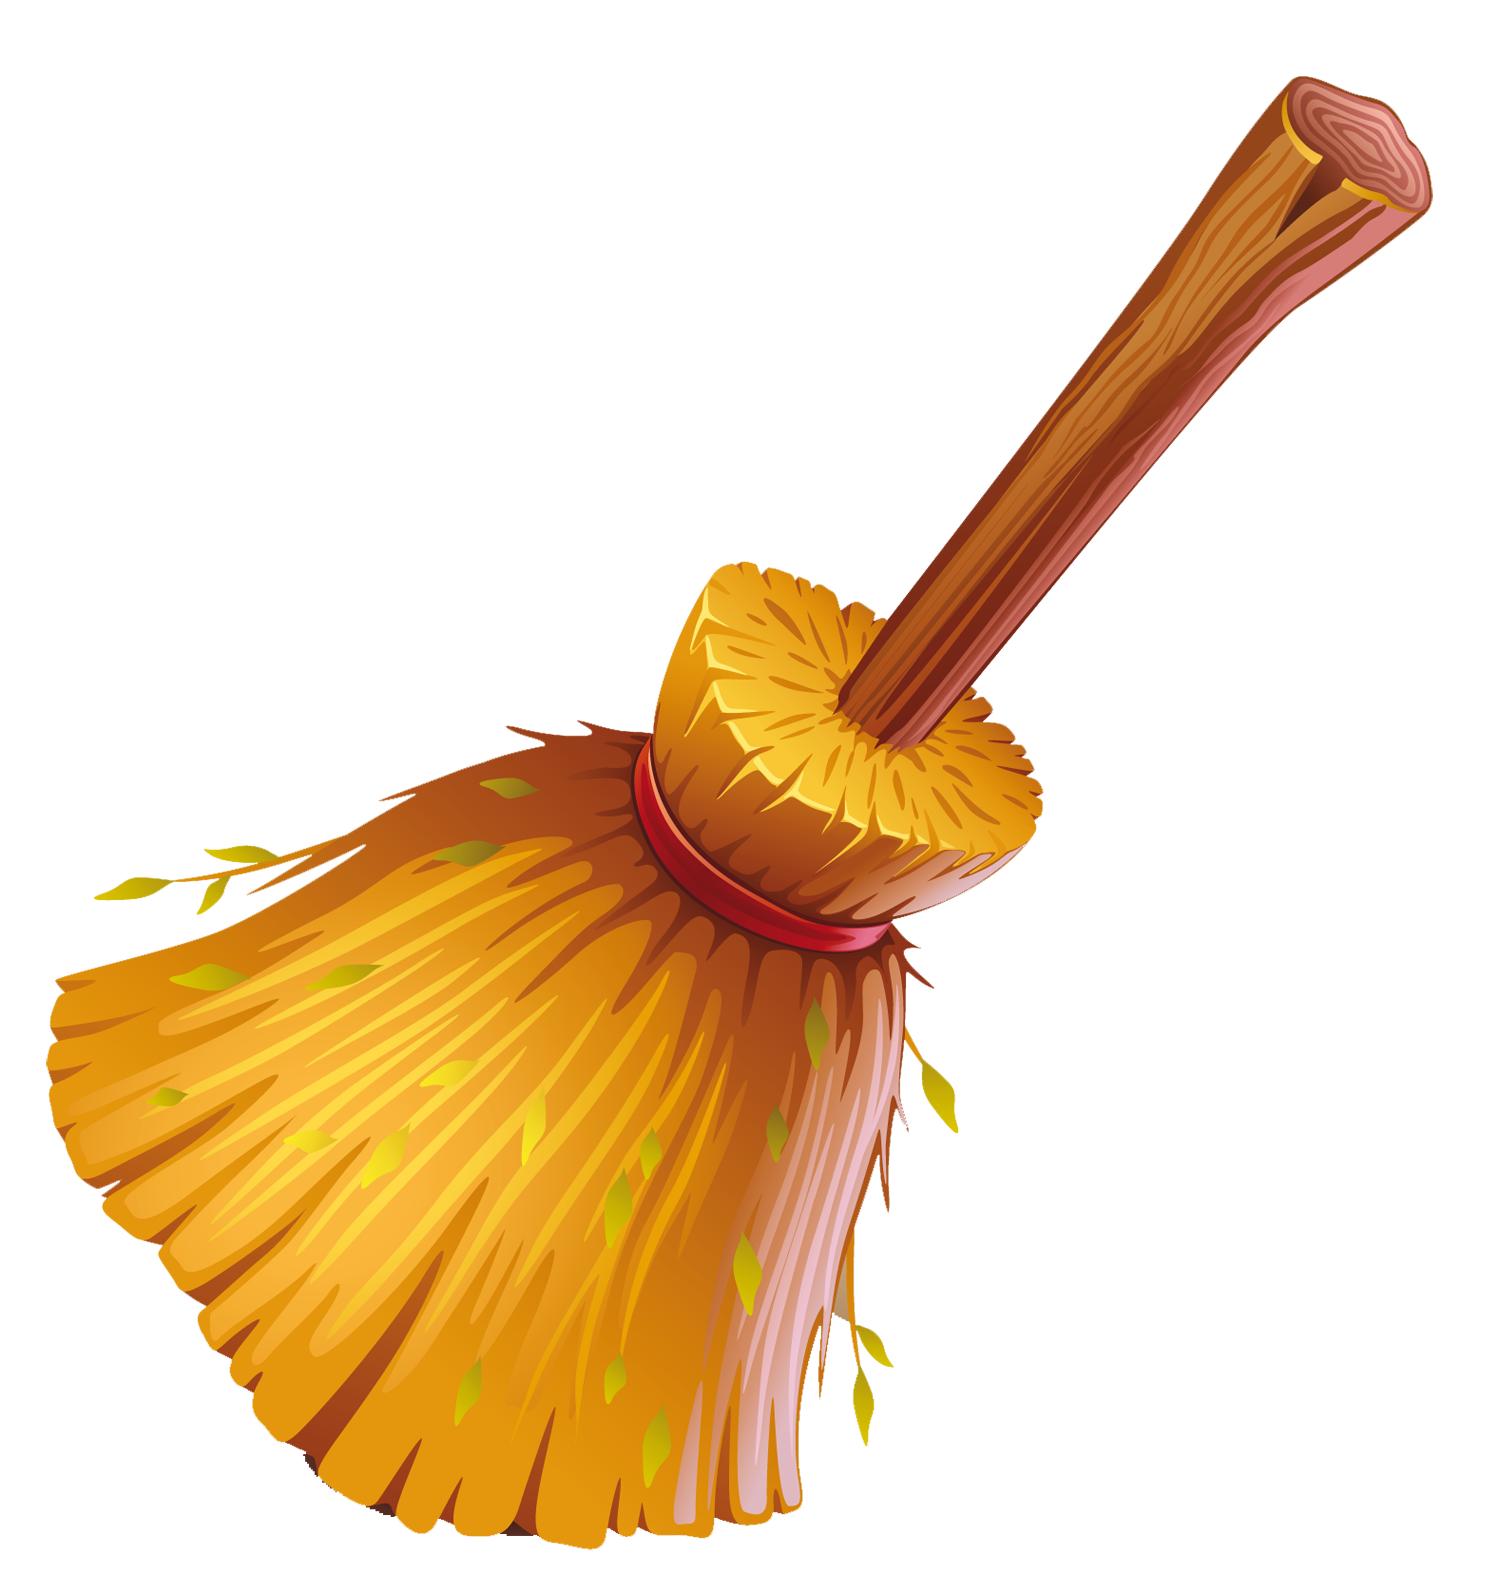 Broom clipart png. Witch gallery yopriceville high